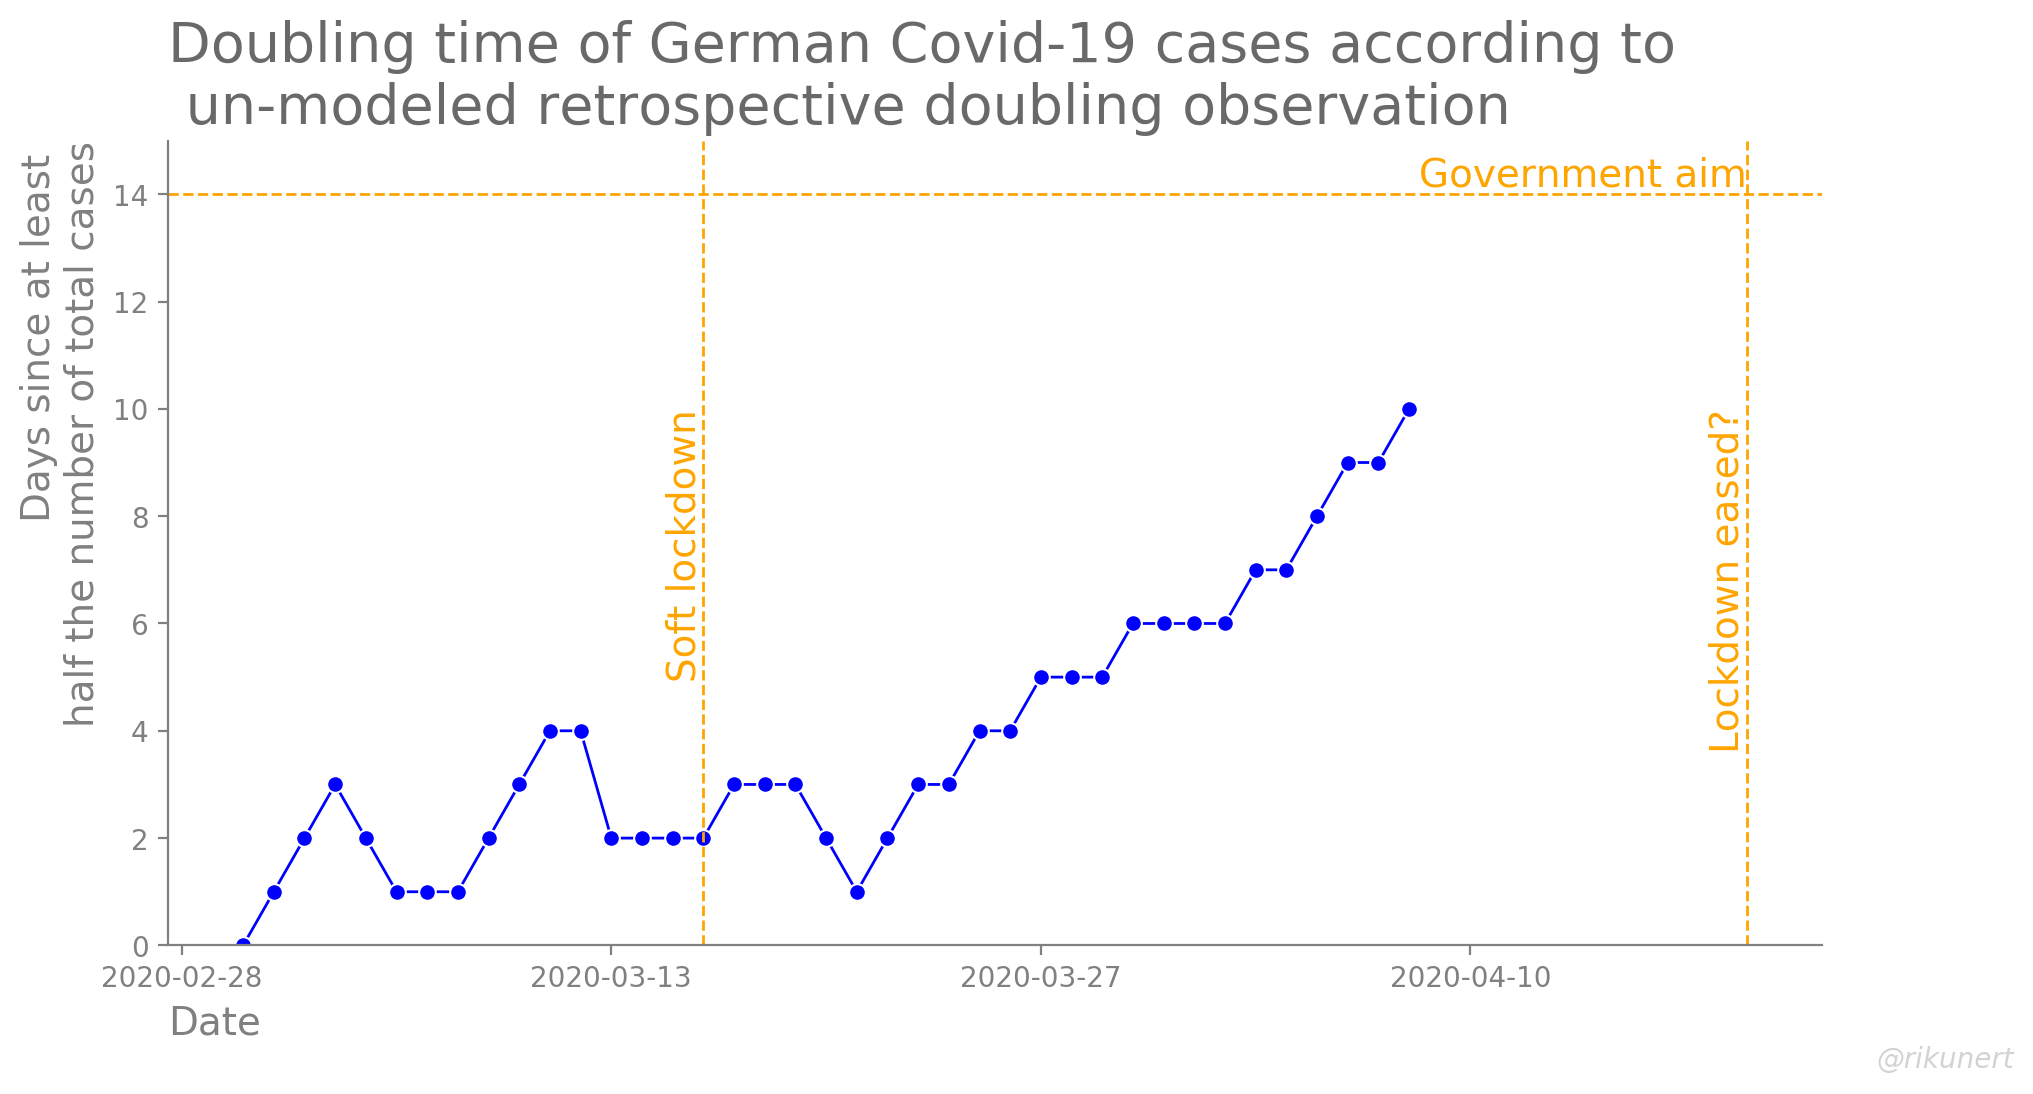 Retrospective doubling time of total Covid-19 cases in Germany